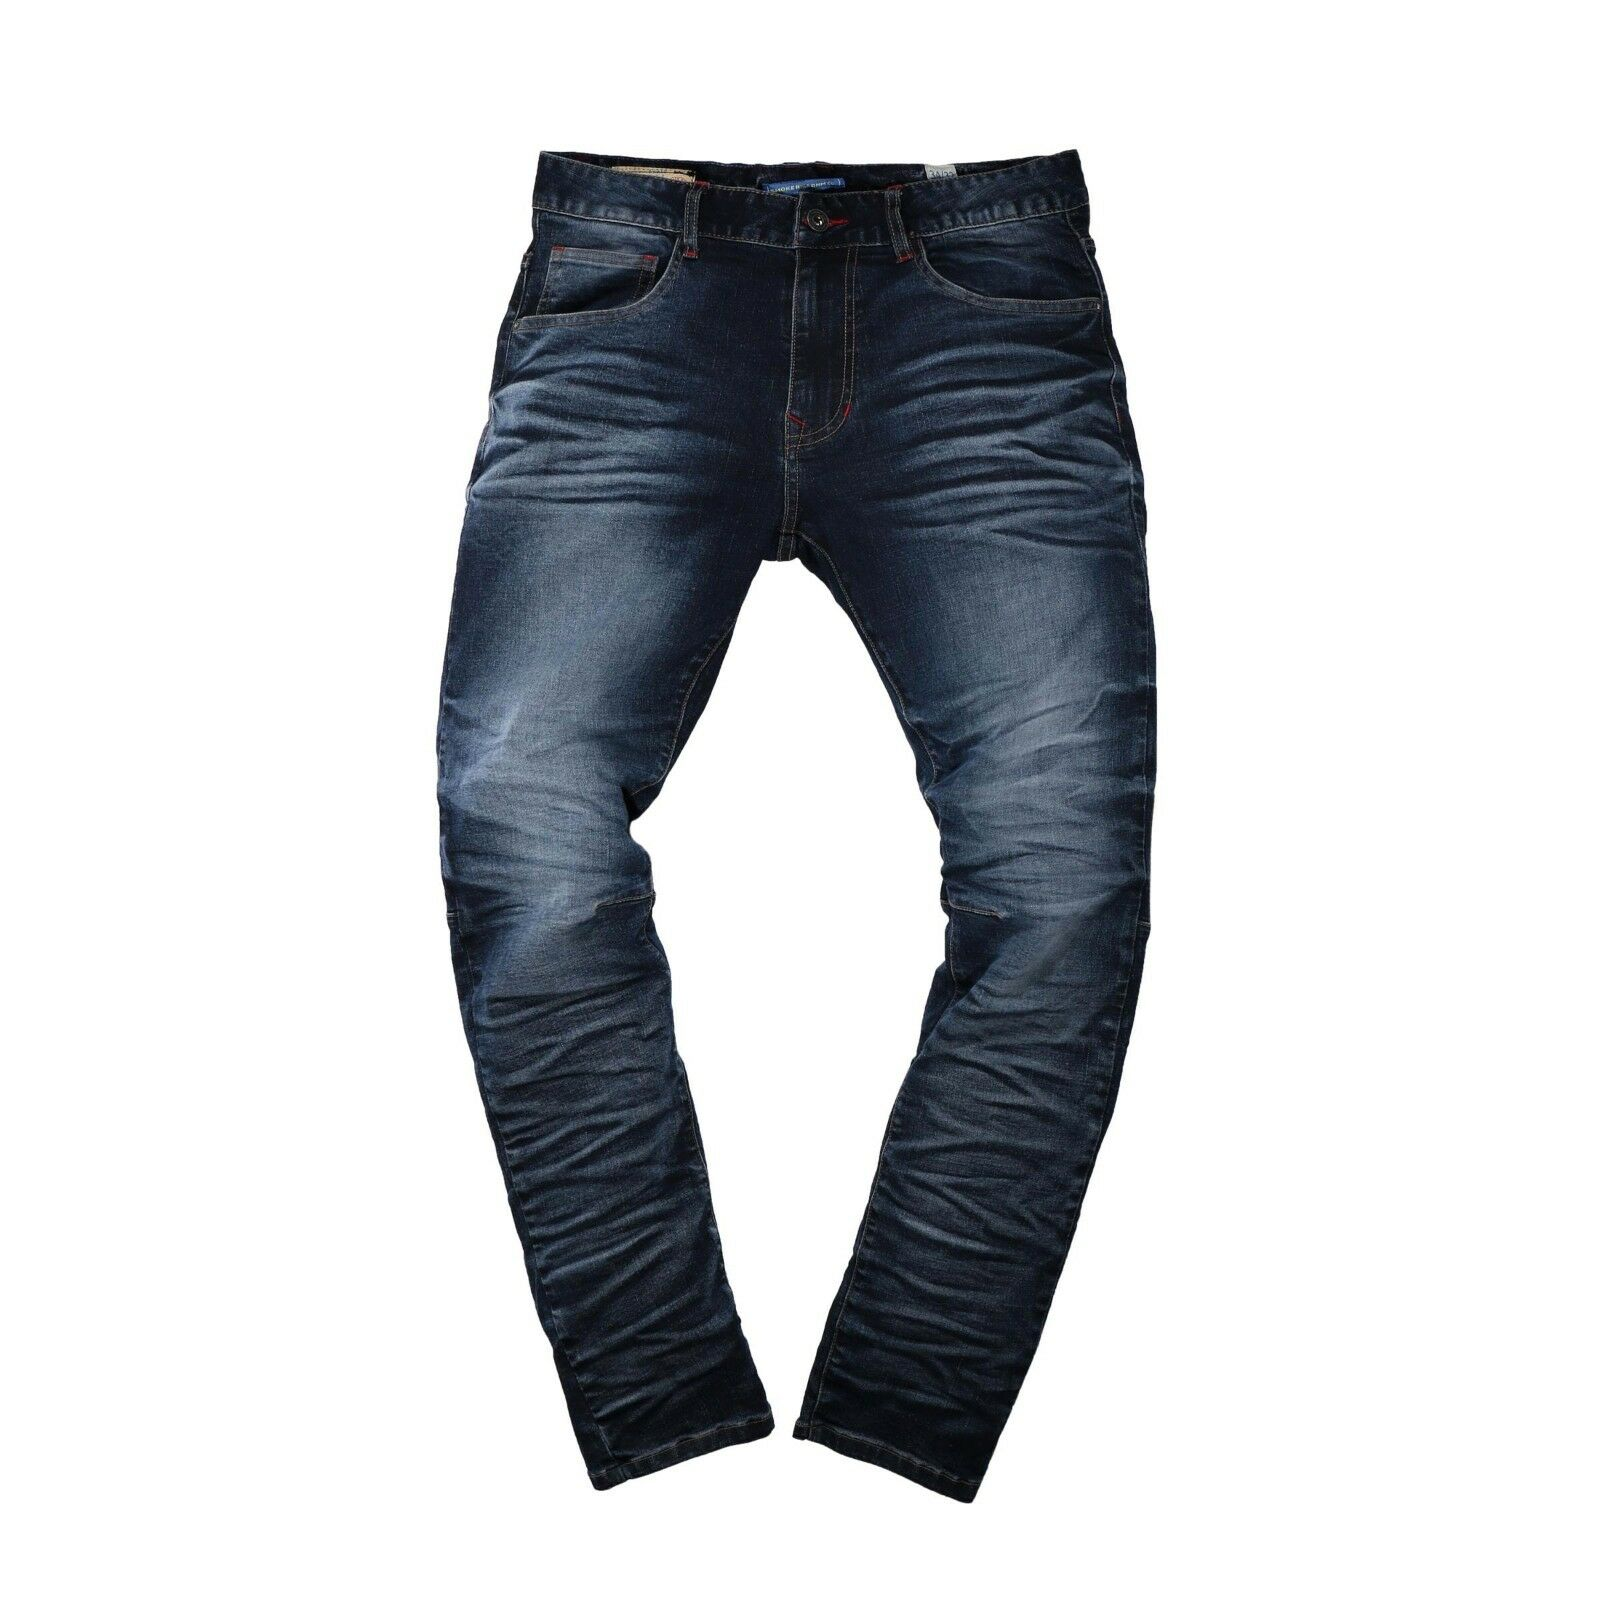 Smoke Rise Reflex bluee Slim Tapered Jeans